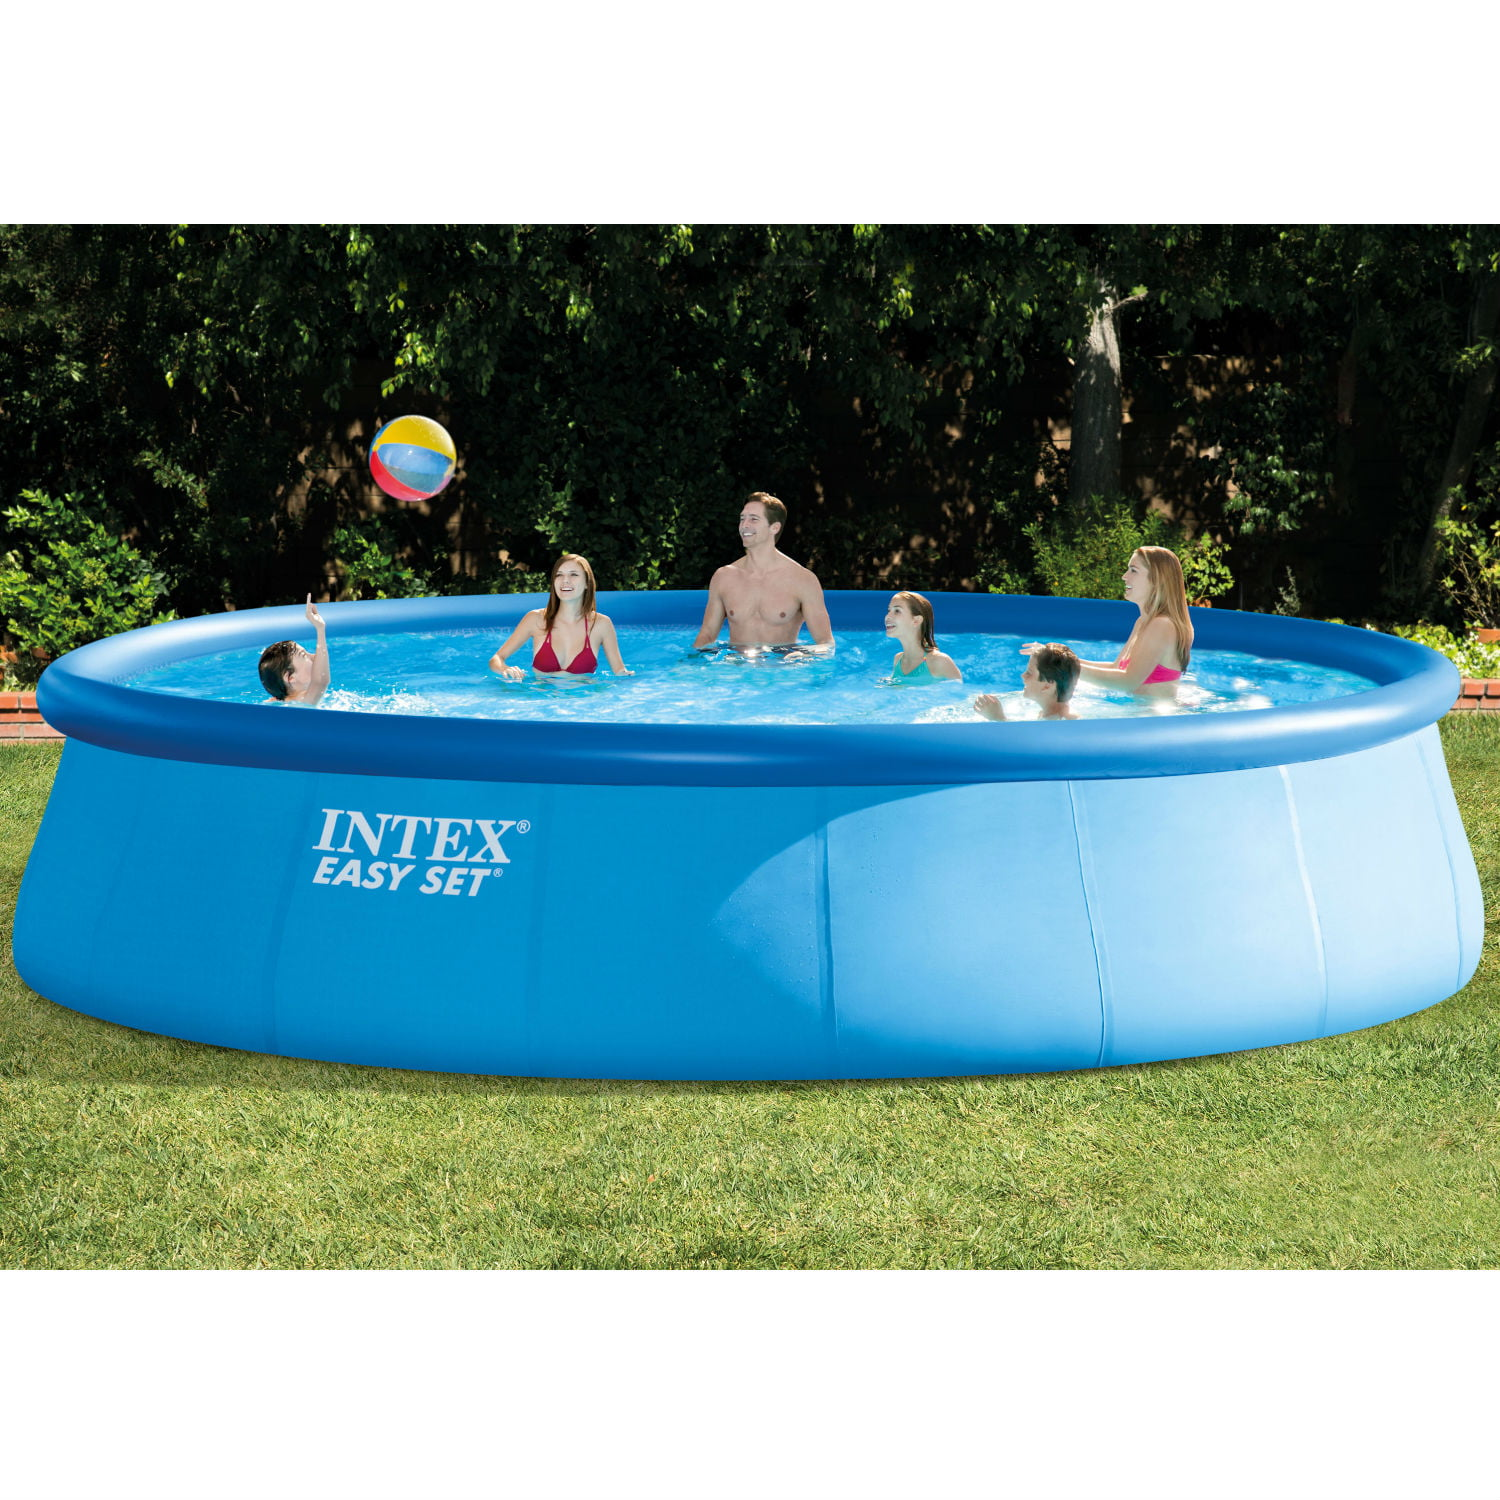 intex 18 39 x 48 easy set above ground swimming pool with. Black Bedroom Furniture Sets. Home Design Ideas